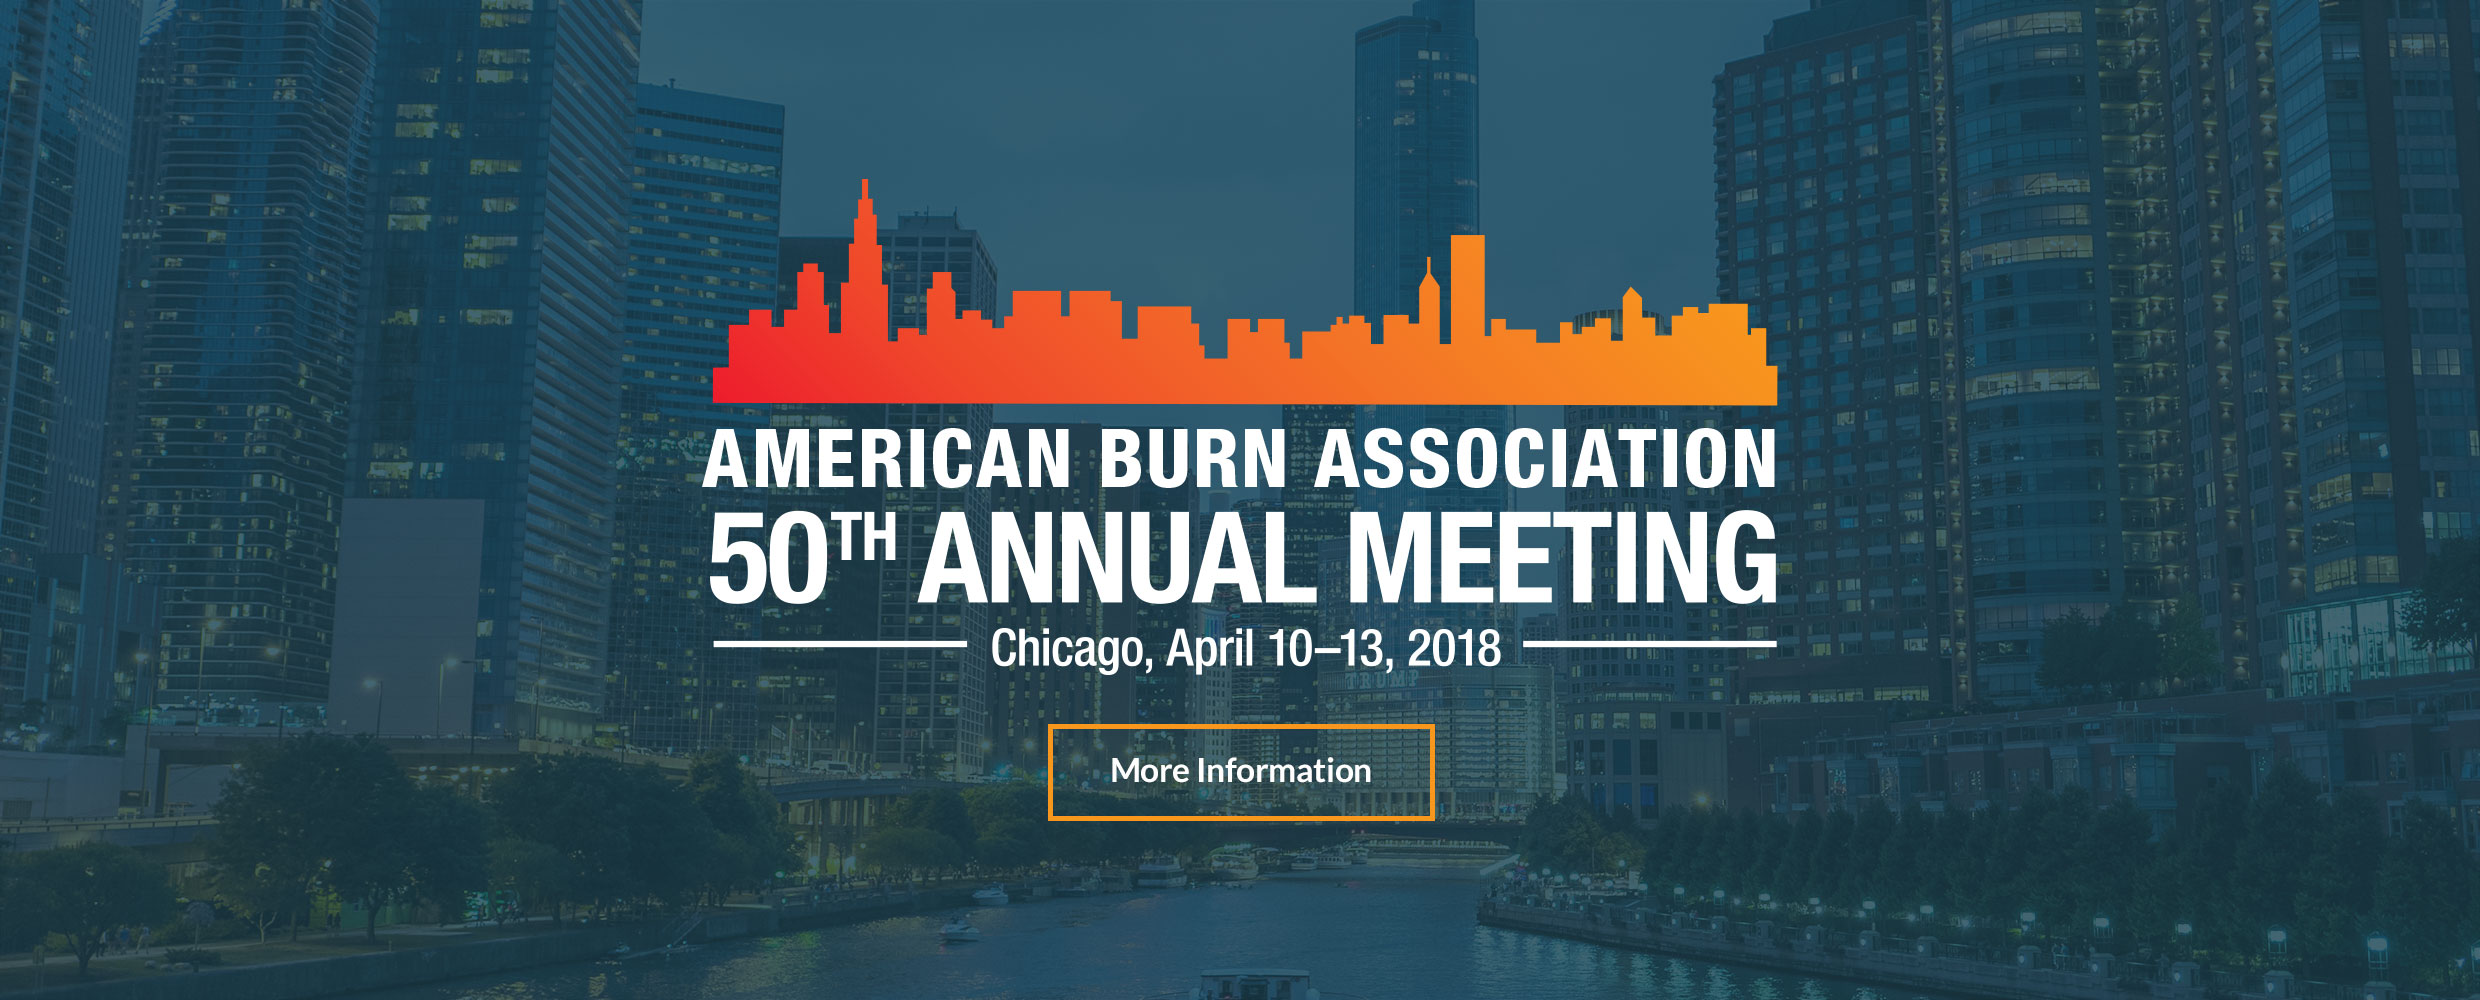 ABA Annual Meeting